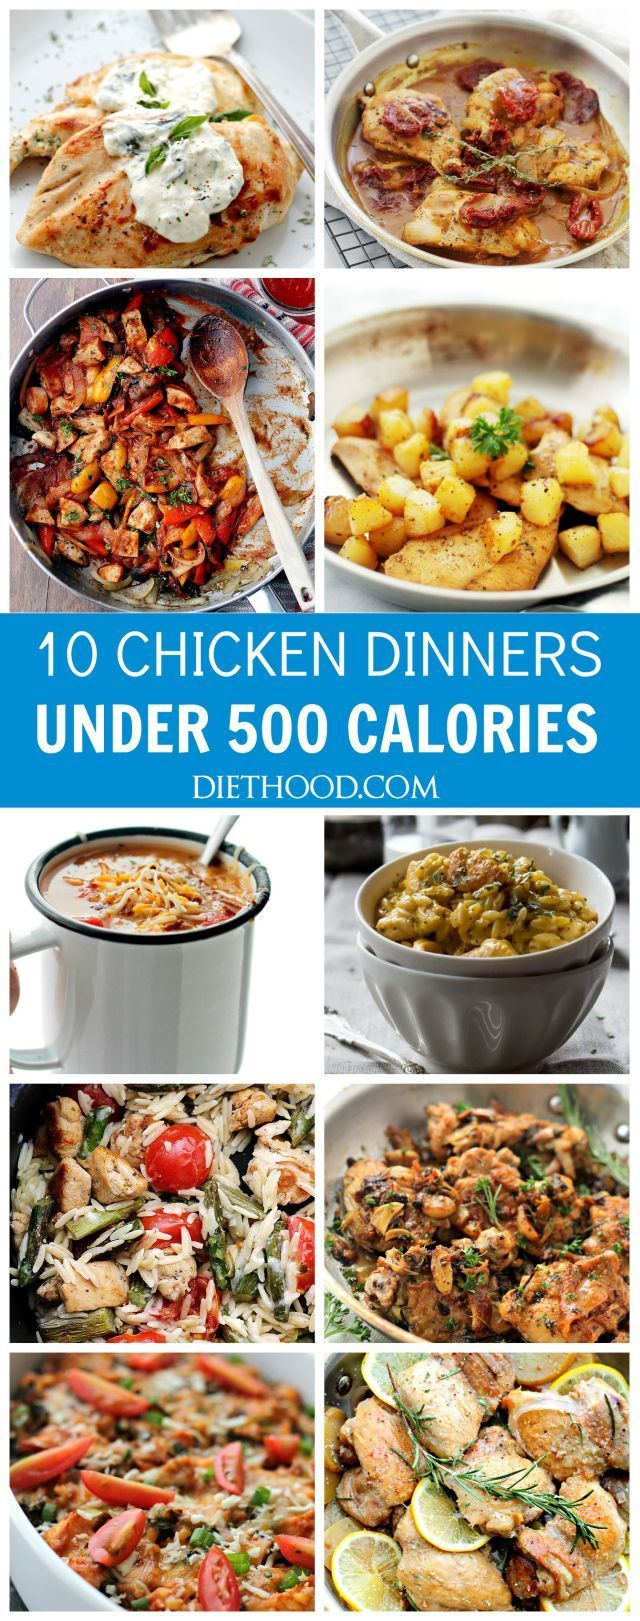 Ten chicken dinners under 500 calories diethood these ten chicken dinners under 500 calories diethood these delicious and forumfinder Image collections